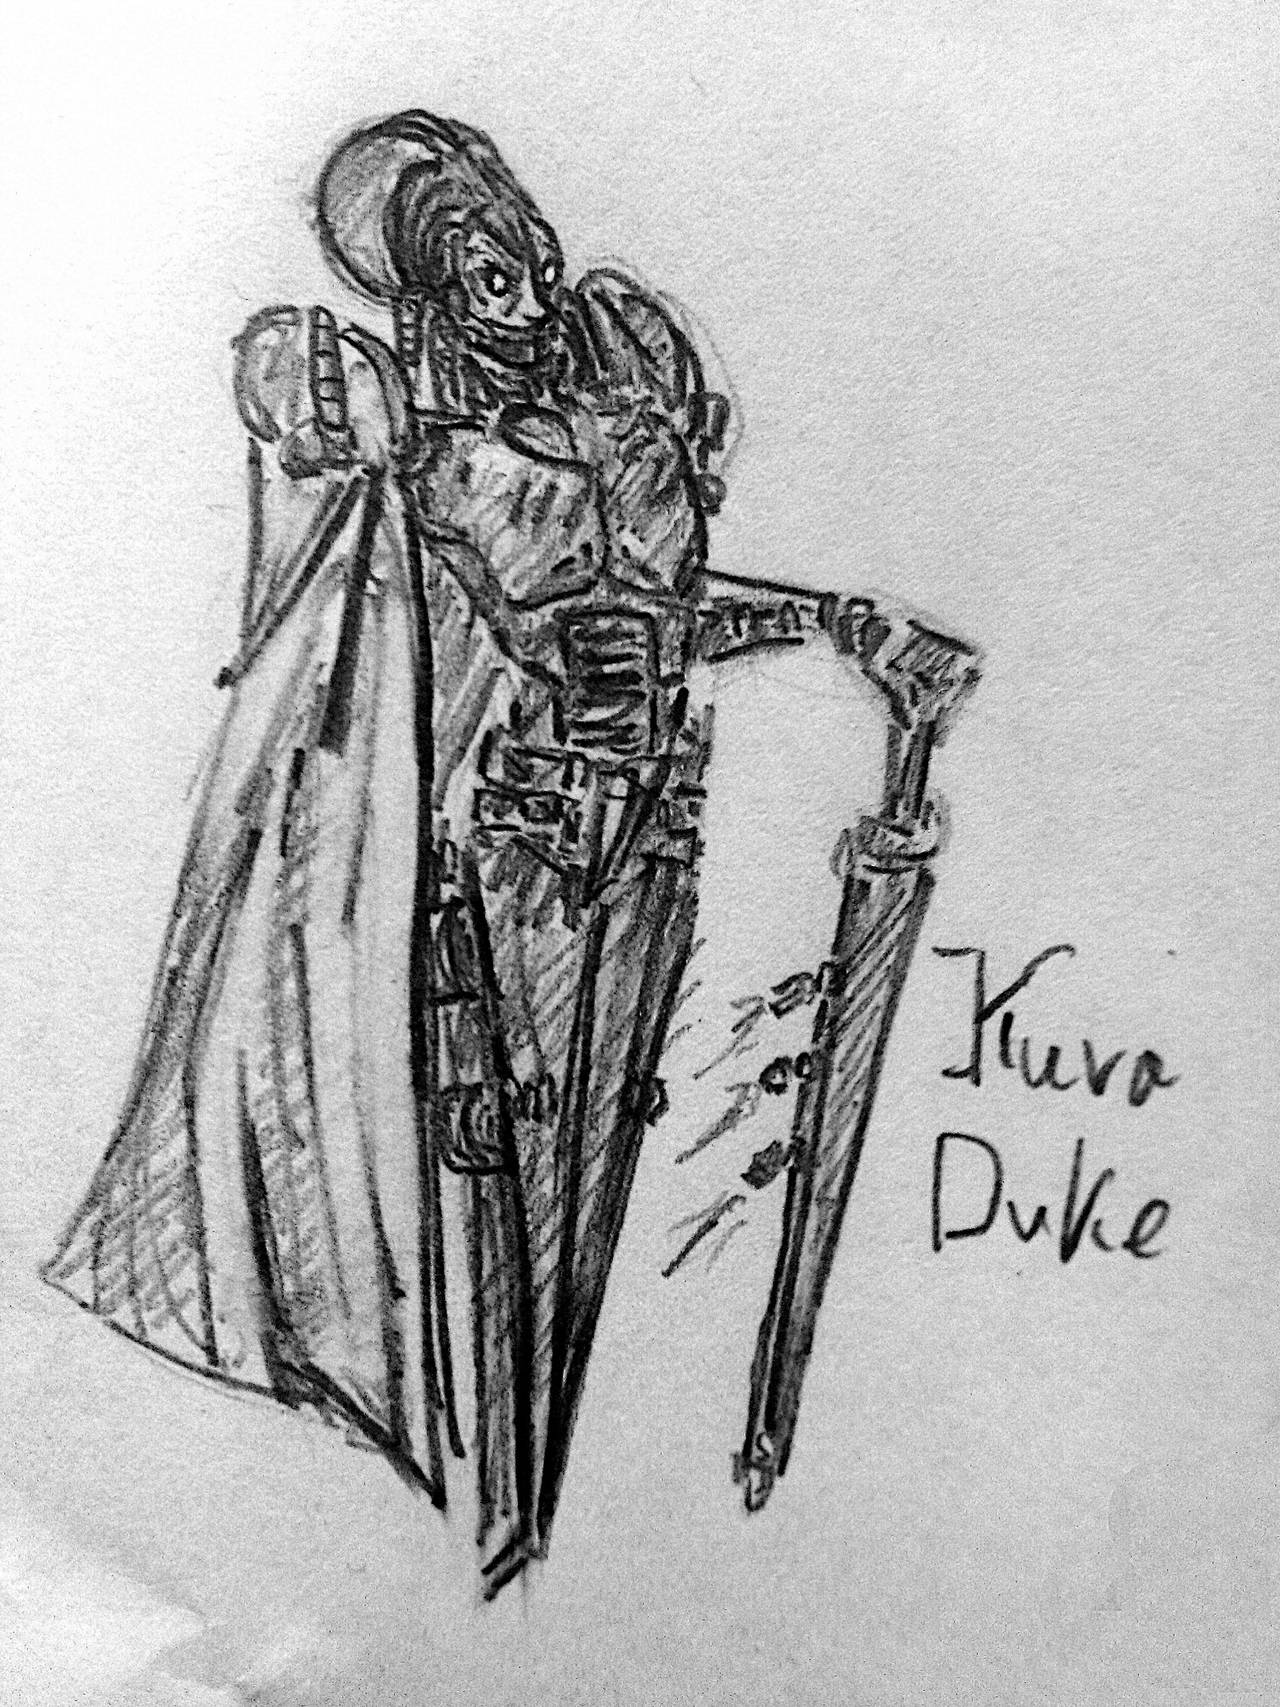 kuva_duke_by_huginthecrowda_dcw7jm2-full